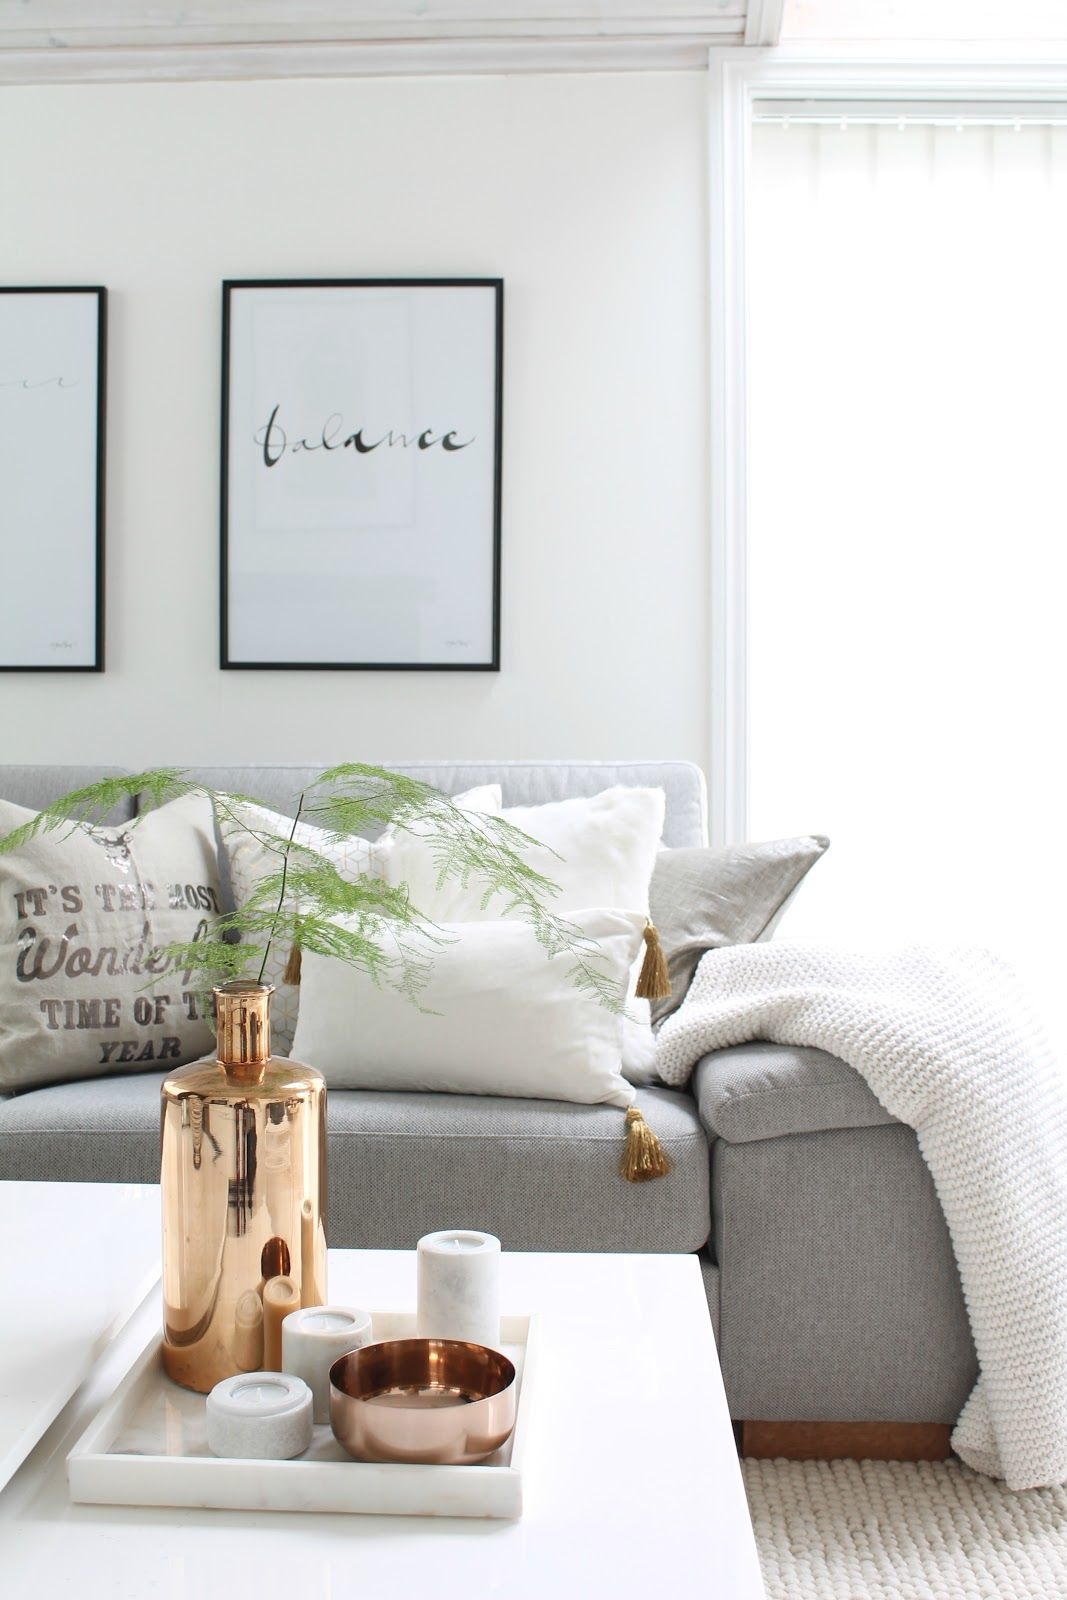 Simplistic cozy living room pictures photos and images for facebook tumblr pinterest and - Cosy home deko ...